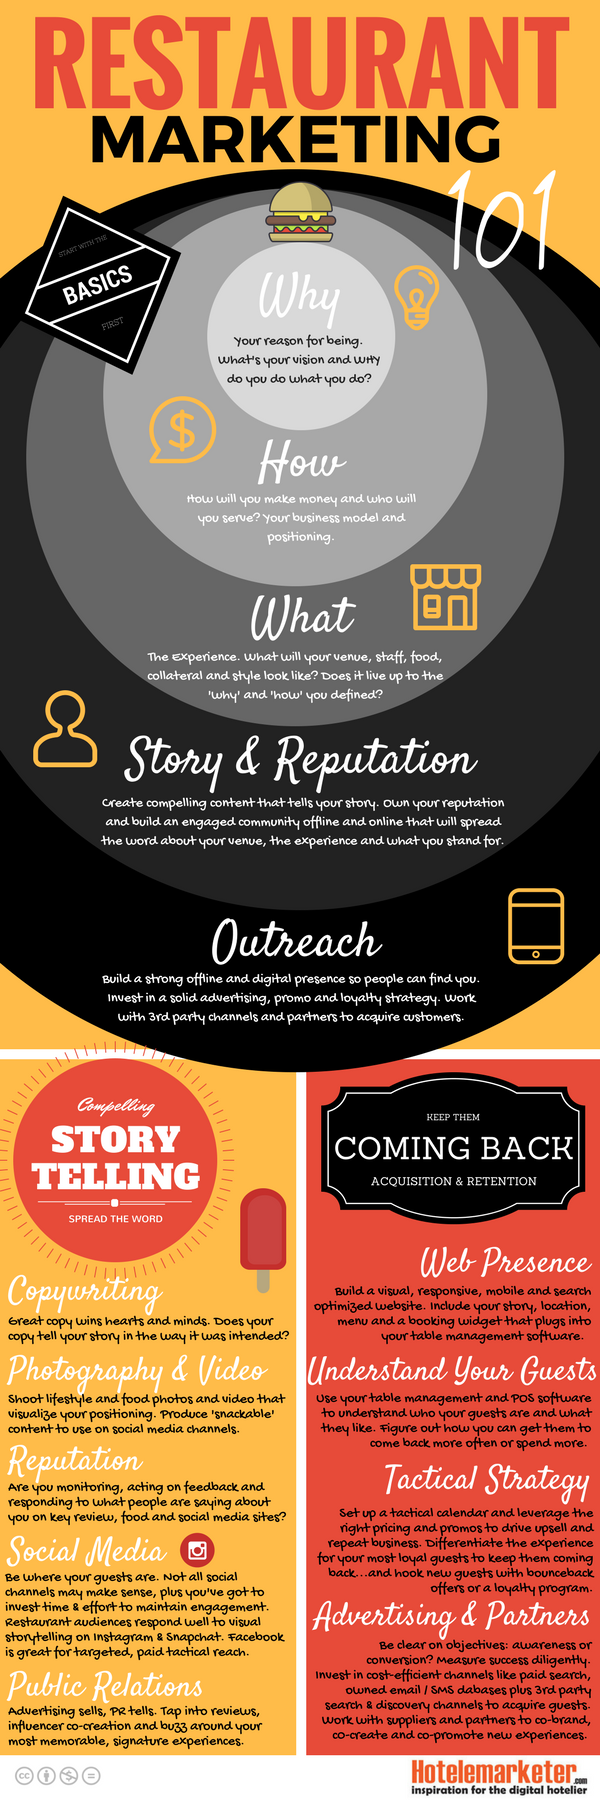 restaurant-marketing-infographic